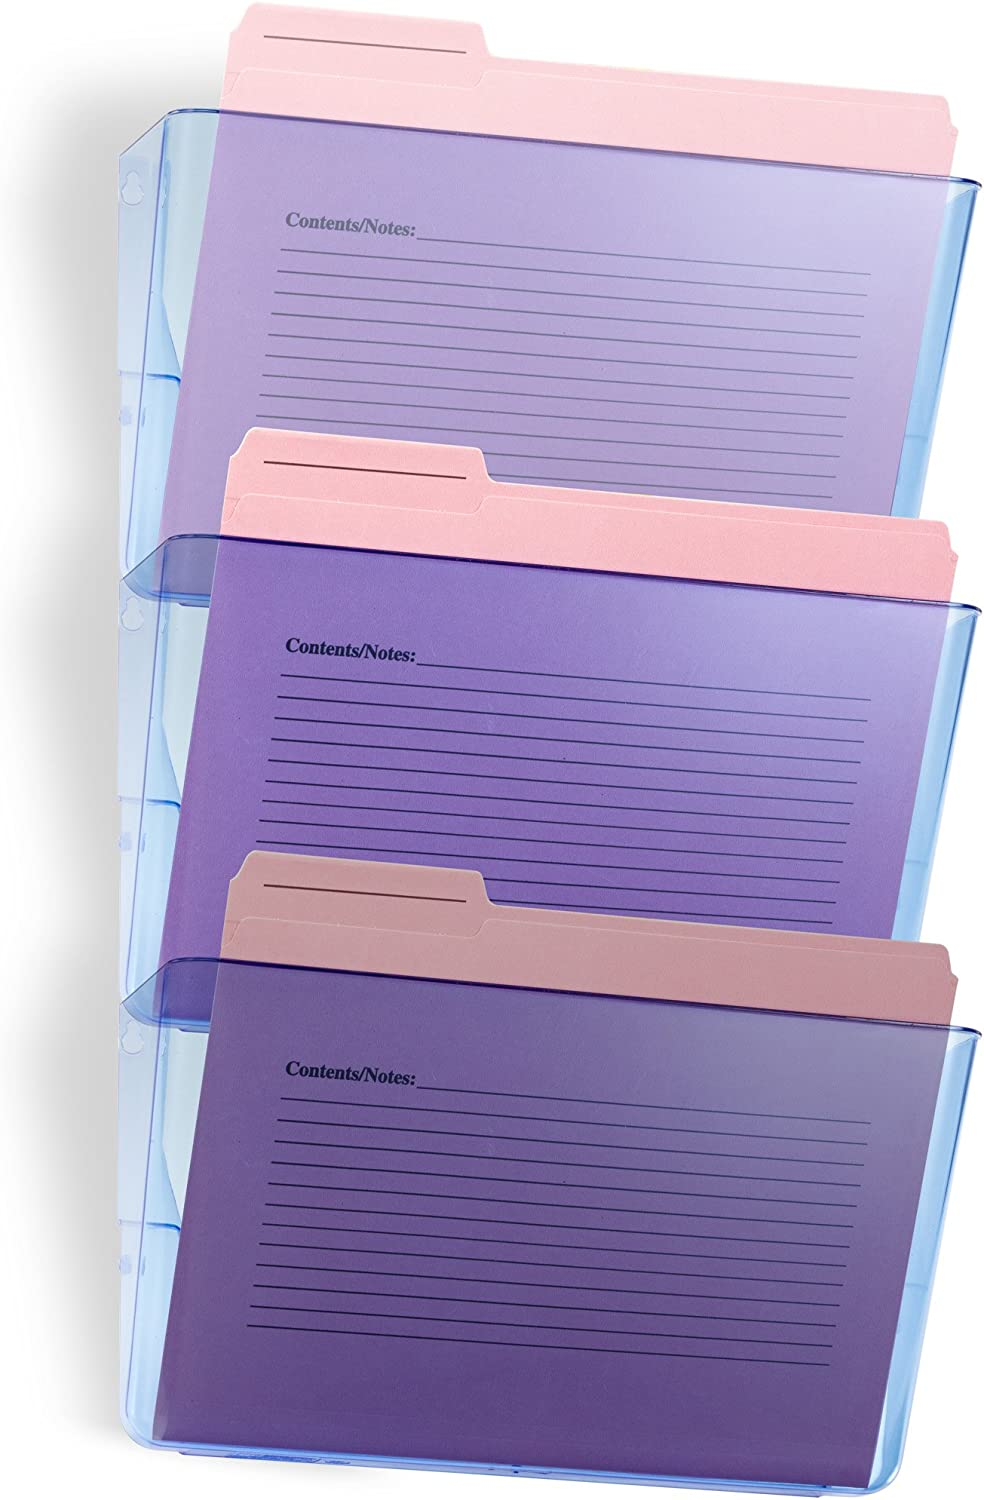 OfficemateOIC Glacier Wall File 3 Pack, Transparent Blue (23220)